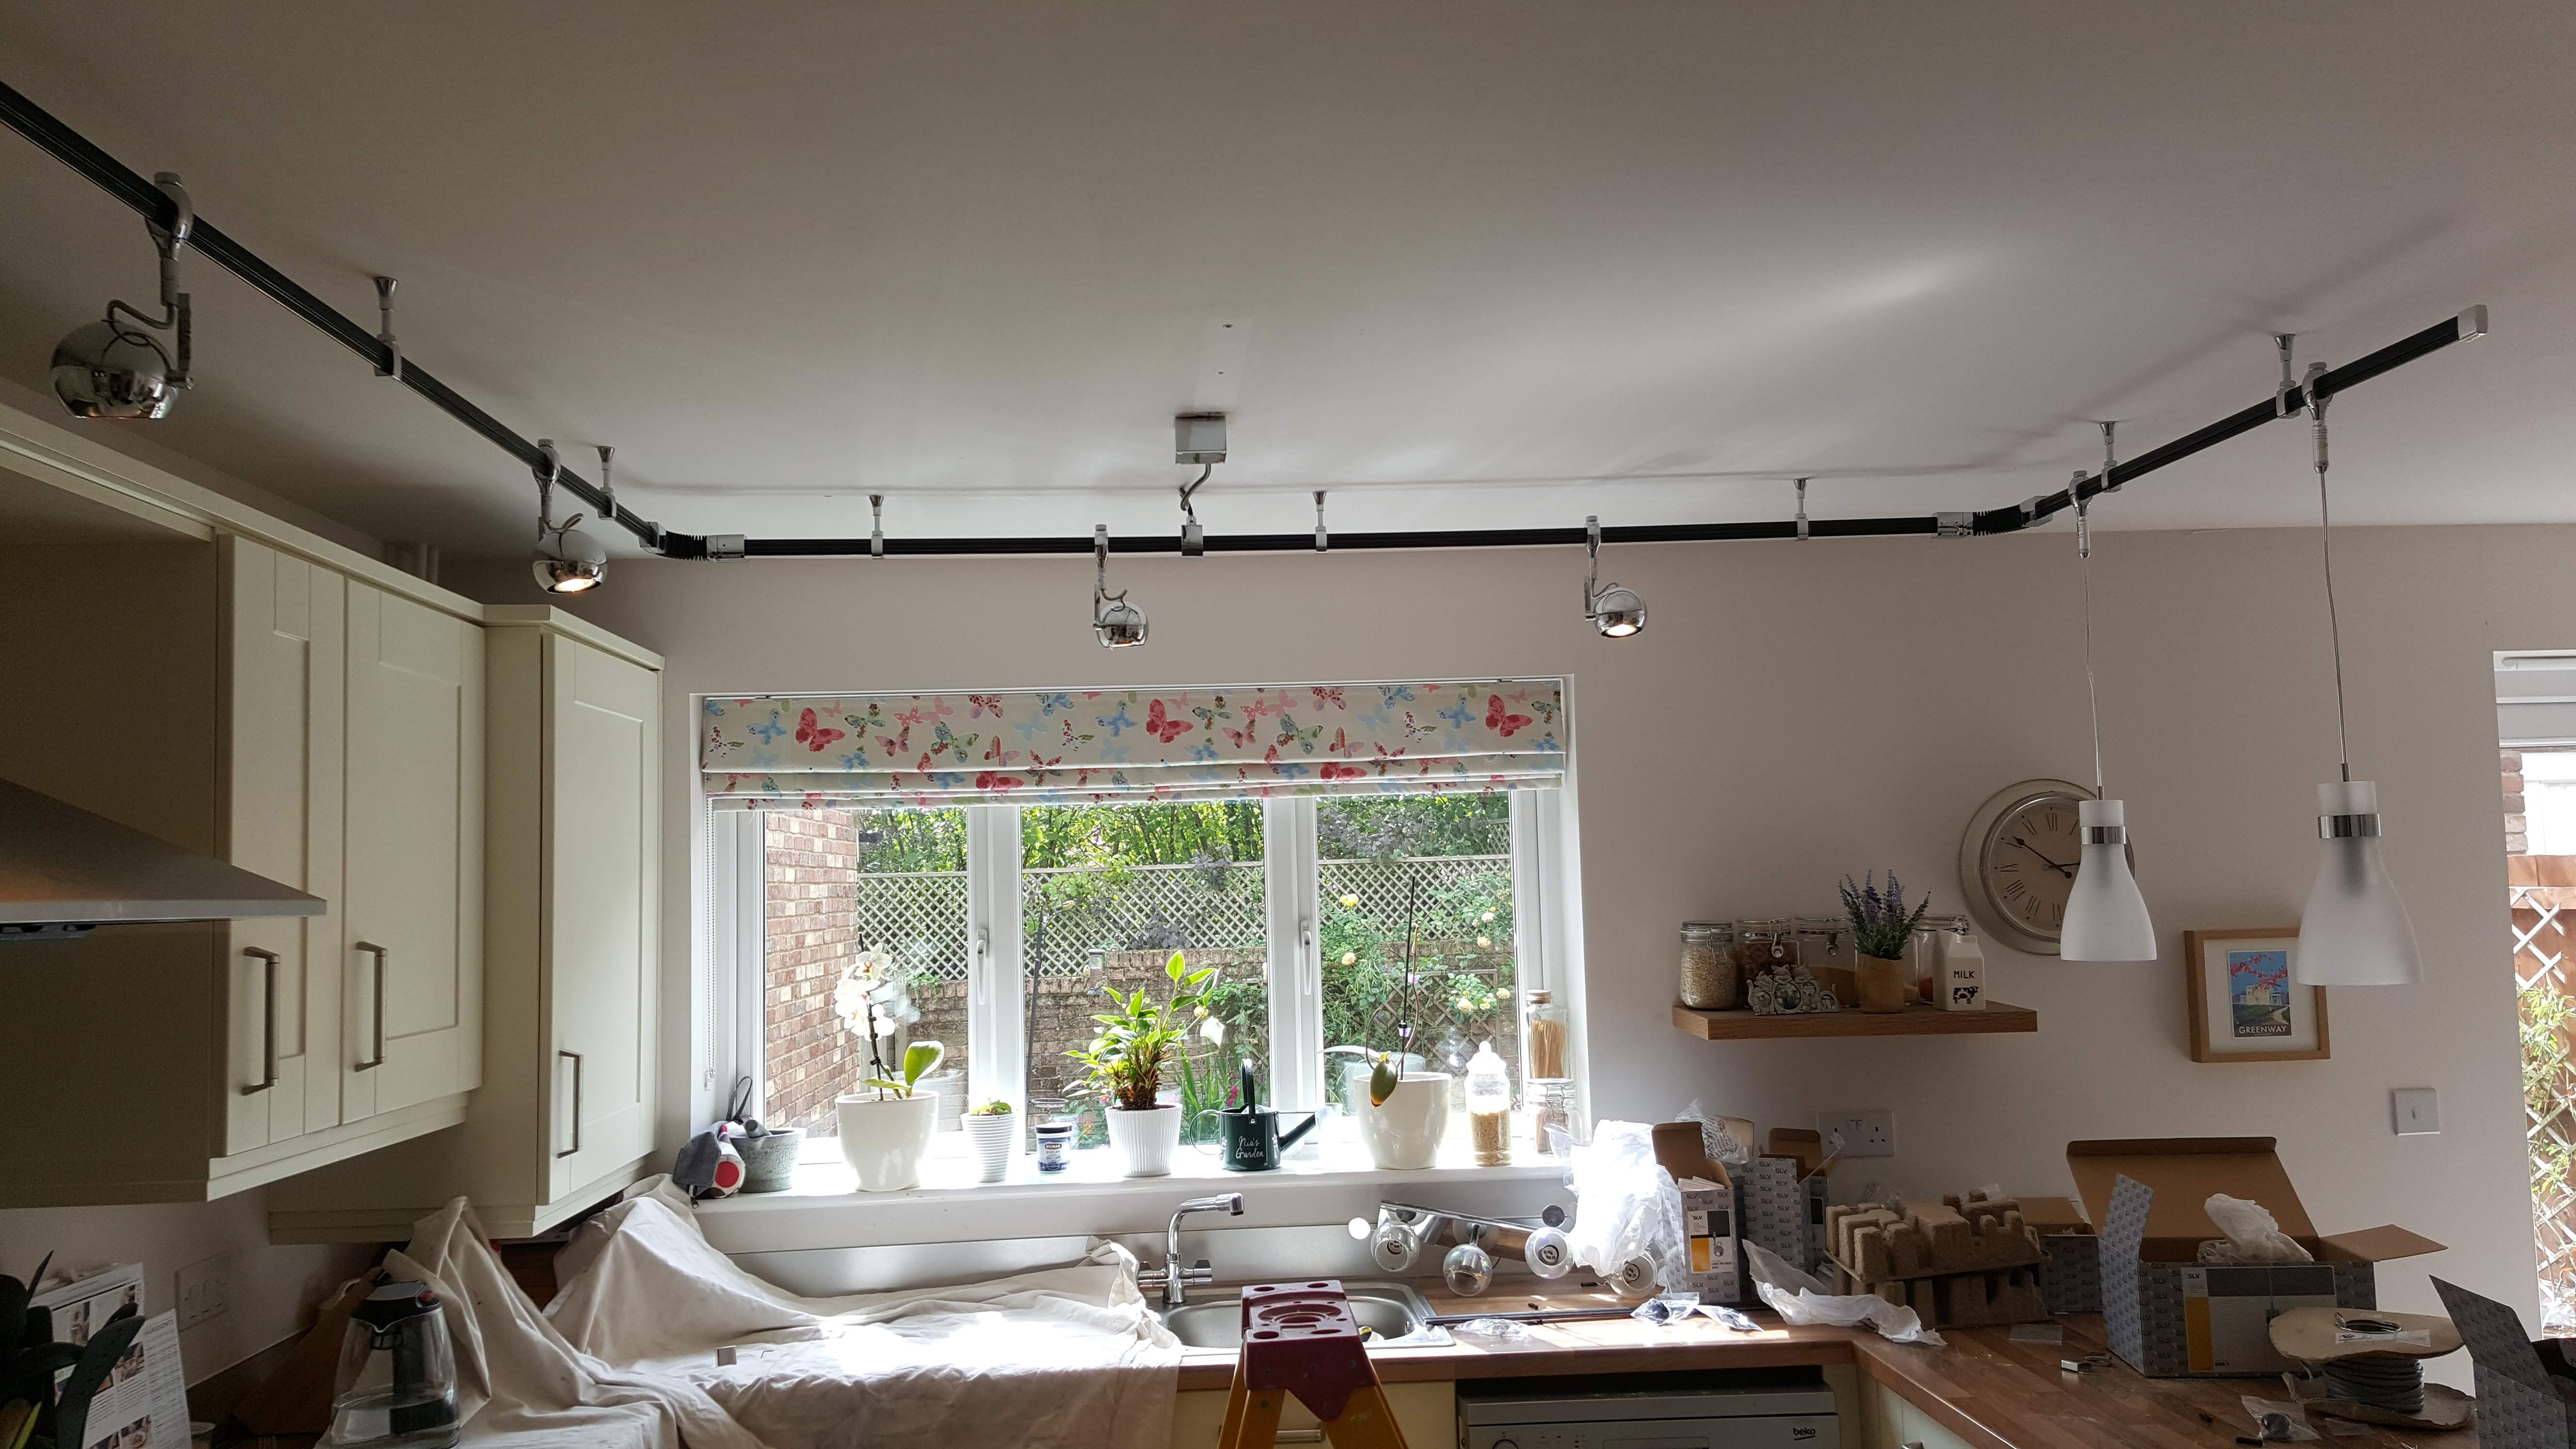 Kitchen lighting installer in cwmbran